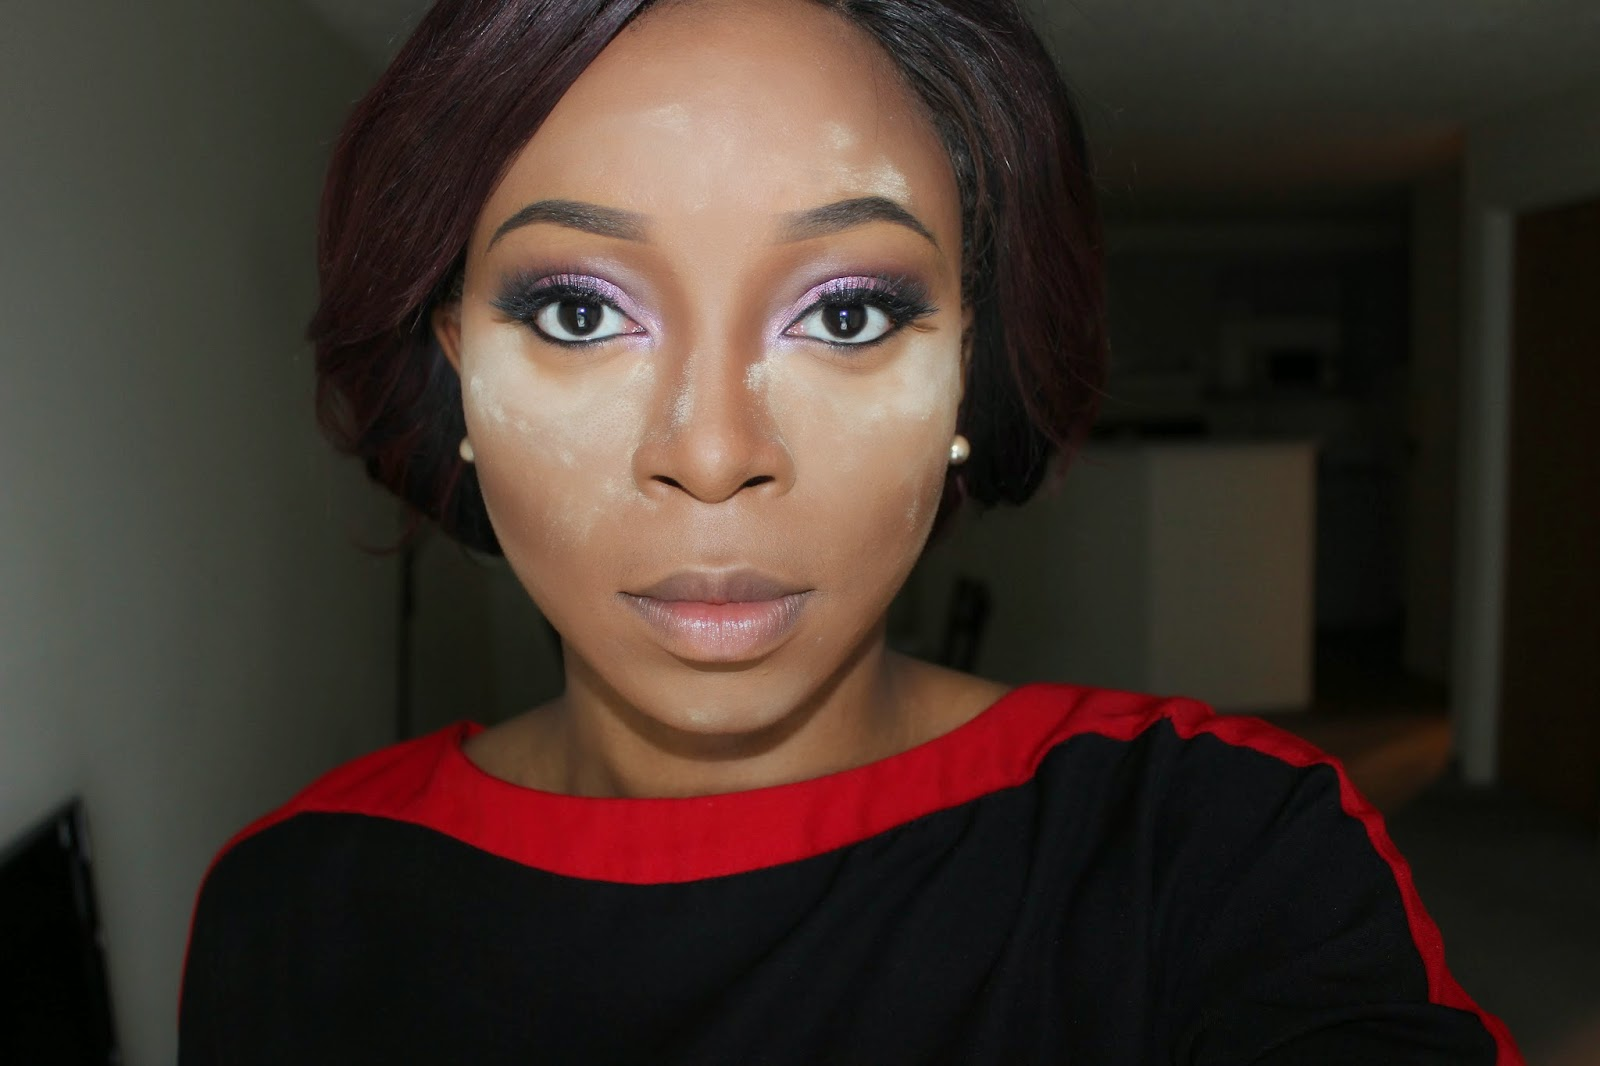 Step 5: Set The Concealer, I Use My Ben Nye Banana Powder To Set My  Highlight And My Bare Minerals Loose Foundation Powder In Warm Deep To Set  The Contour